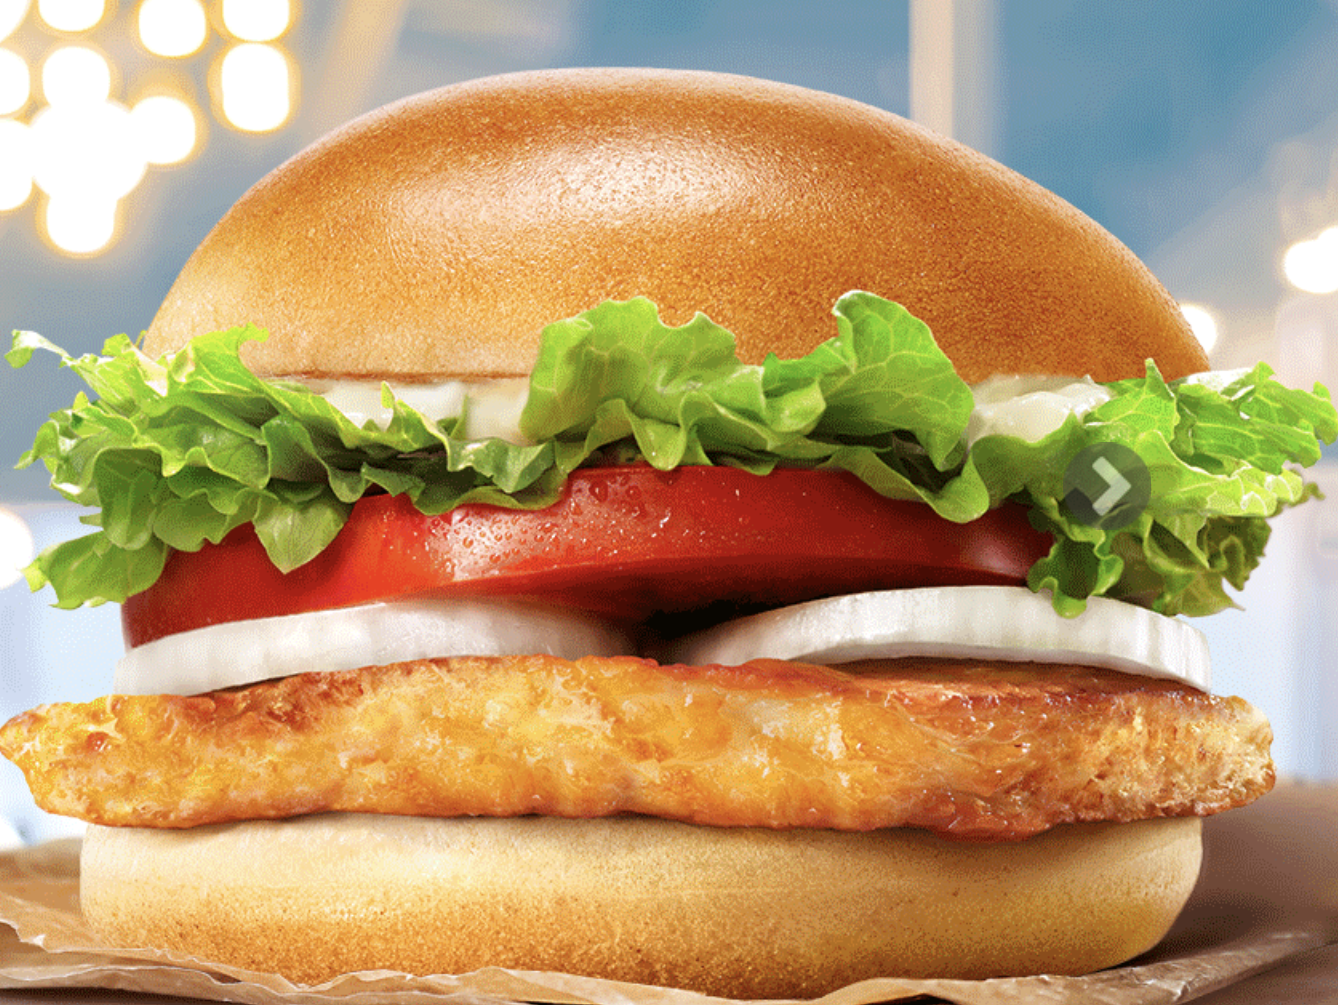 Will Burger King's New Halloumi Burger Ever Make It To America?